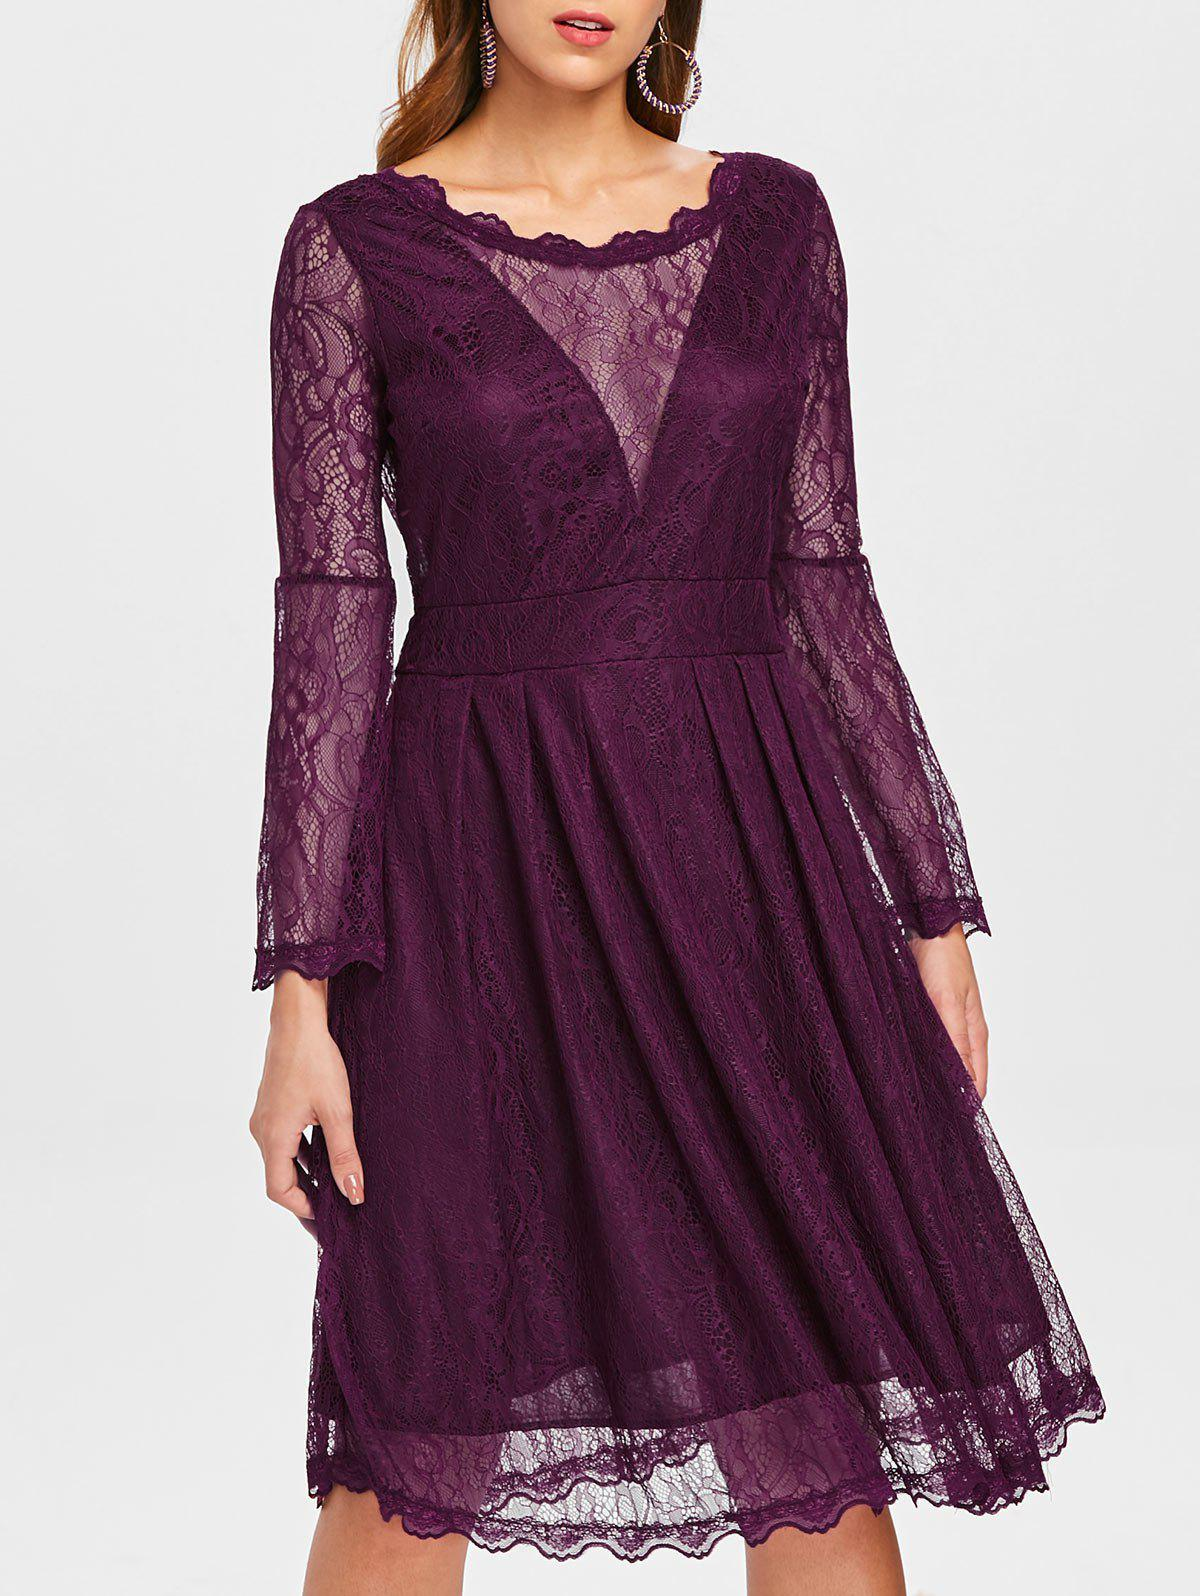 Online Scalloped Detail Lace Overlap Dress